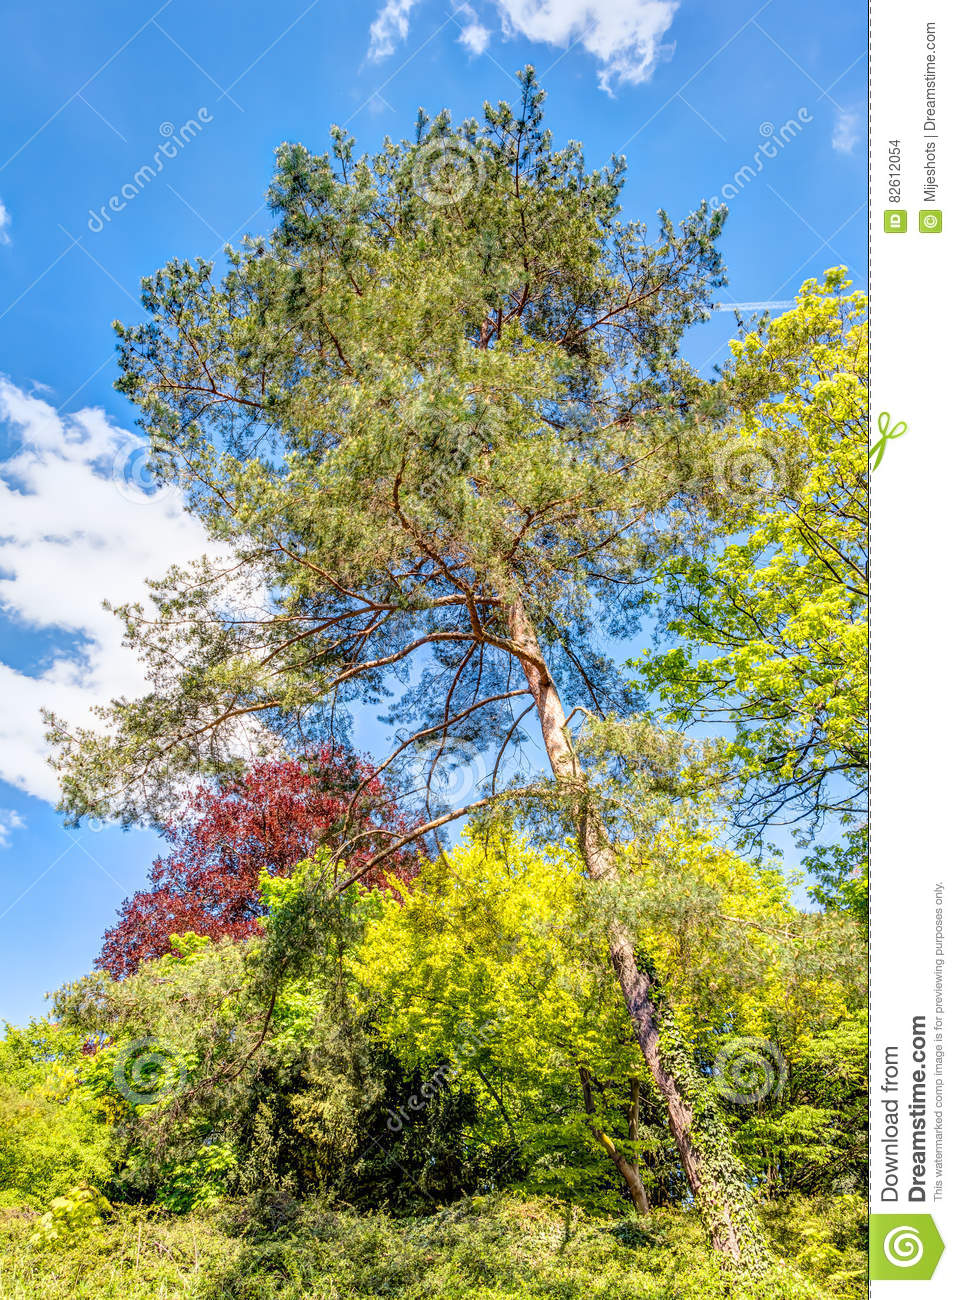 Multi colored trees stock photo. Image of tranquil, landscape - 82612054